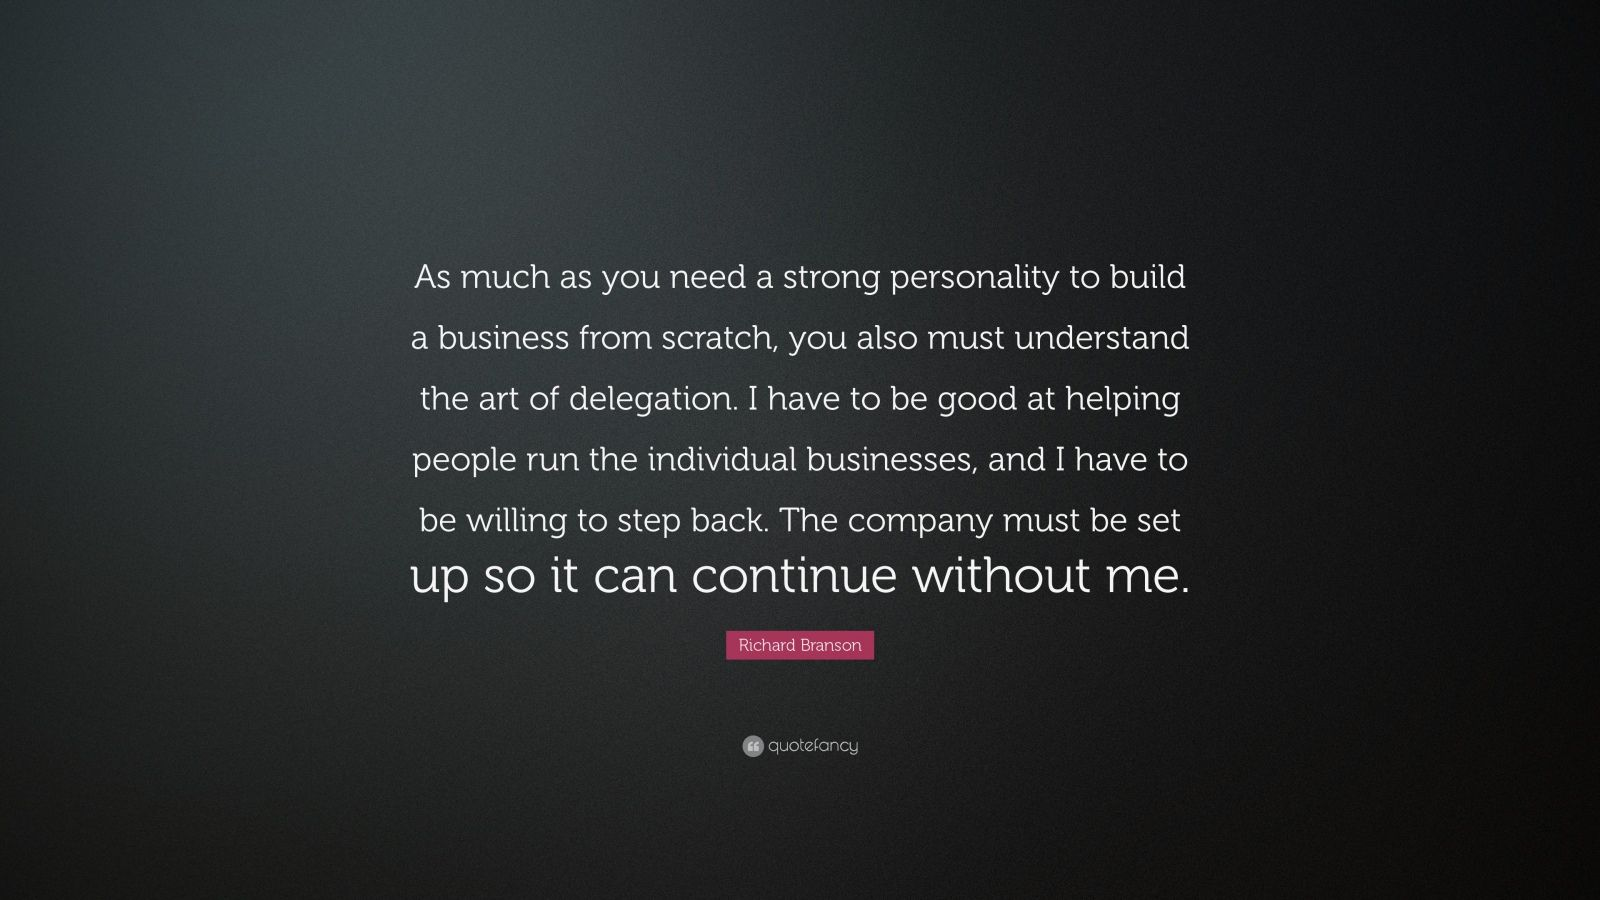 "Richard Branson Quote: ""As much as you need a strong personality to build a business from scratch, you also must understand the art of delegation. I have to be good at helping people run the individual businesses, and I have to be willing to step back. The company must be set up so it can continue without me."""